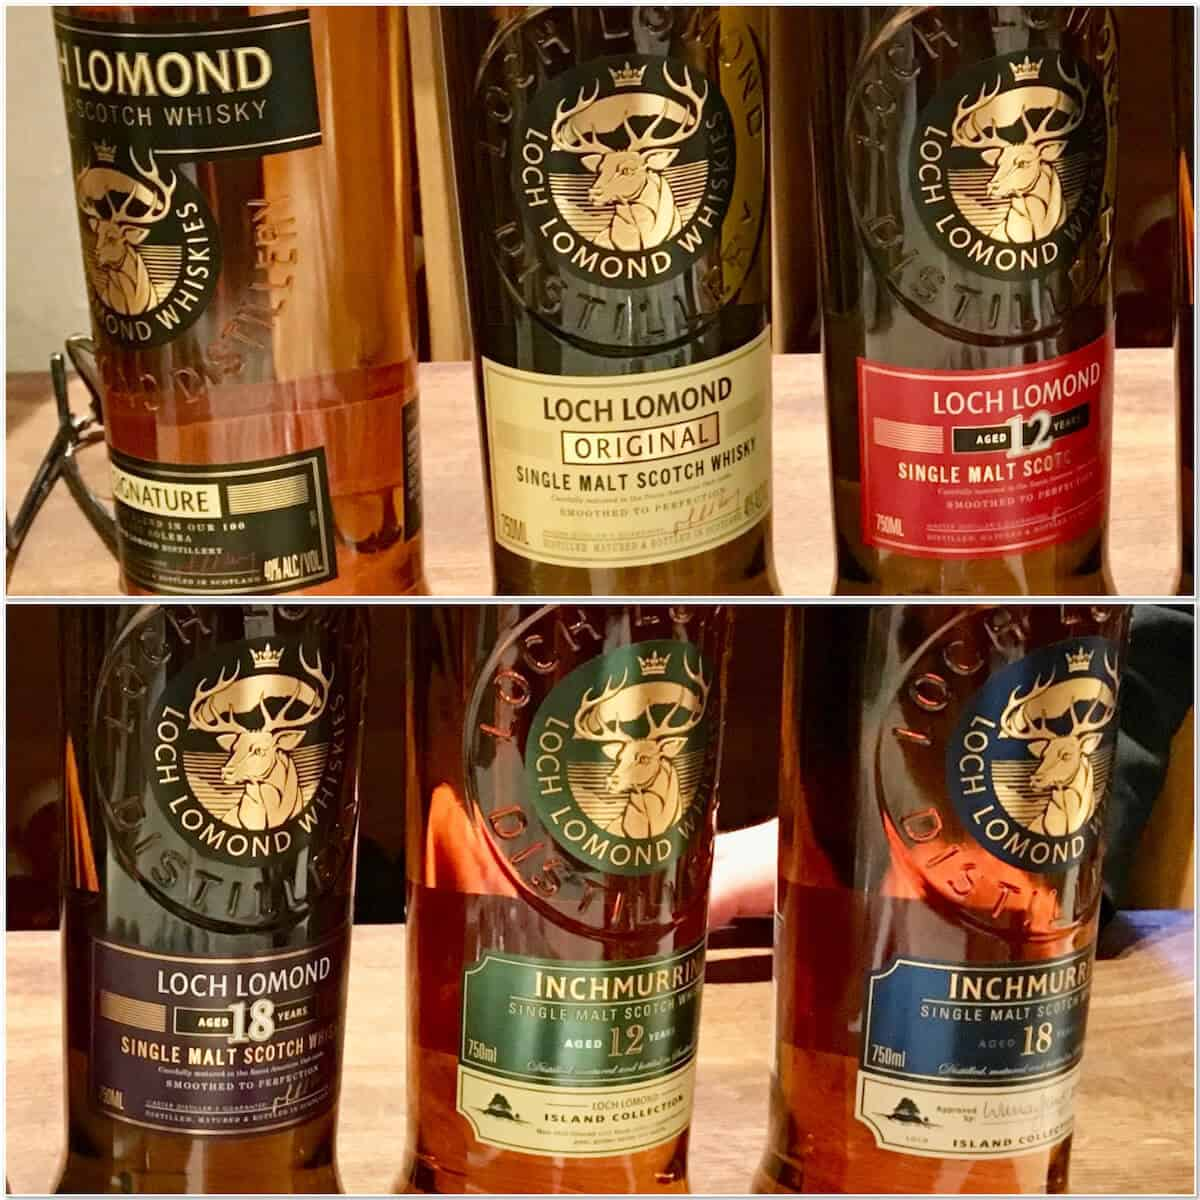 Collage of Loch Lomond whisky lineup in bottles.